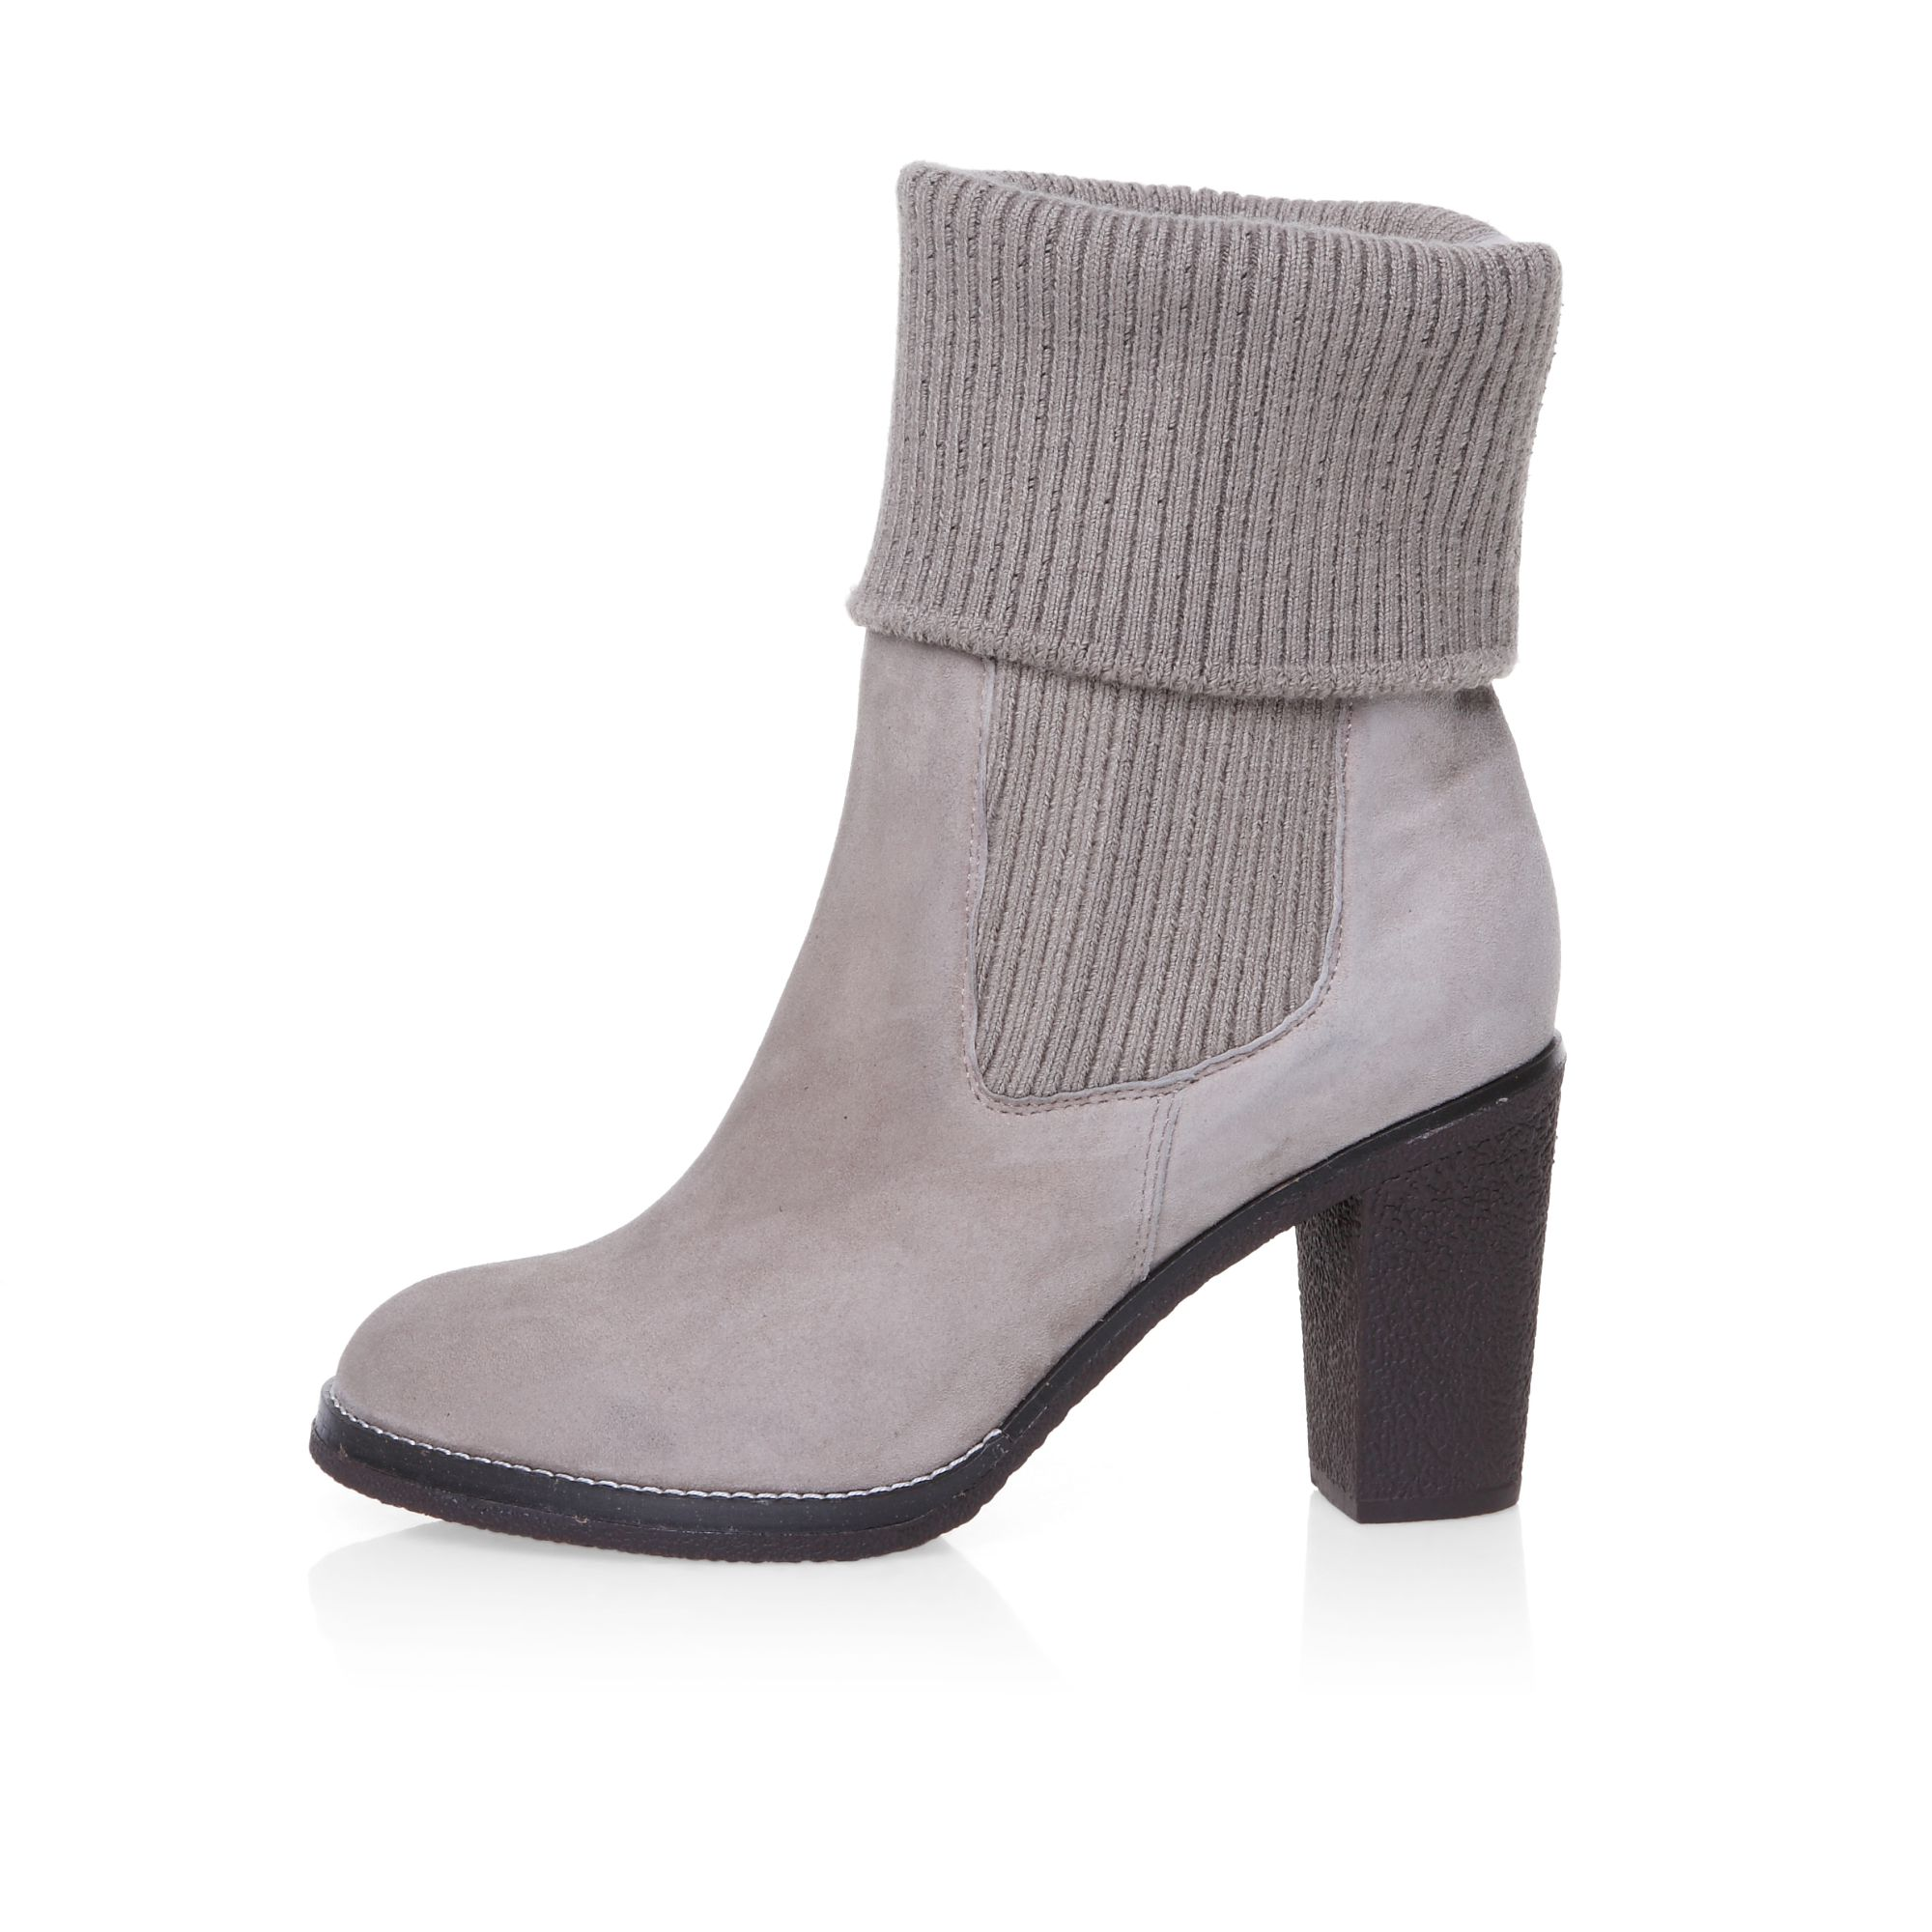 Knitted cuff detail ankle boots